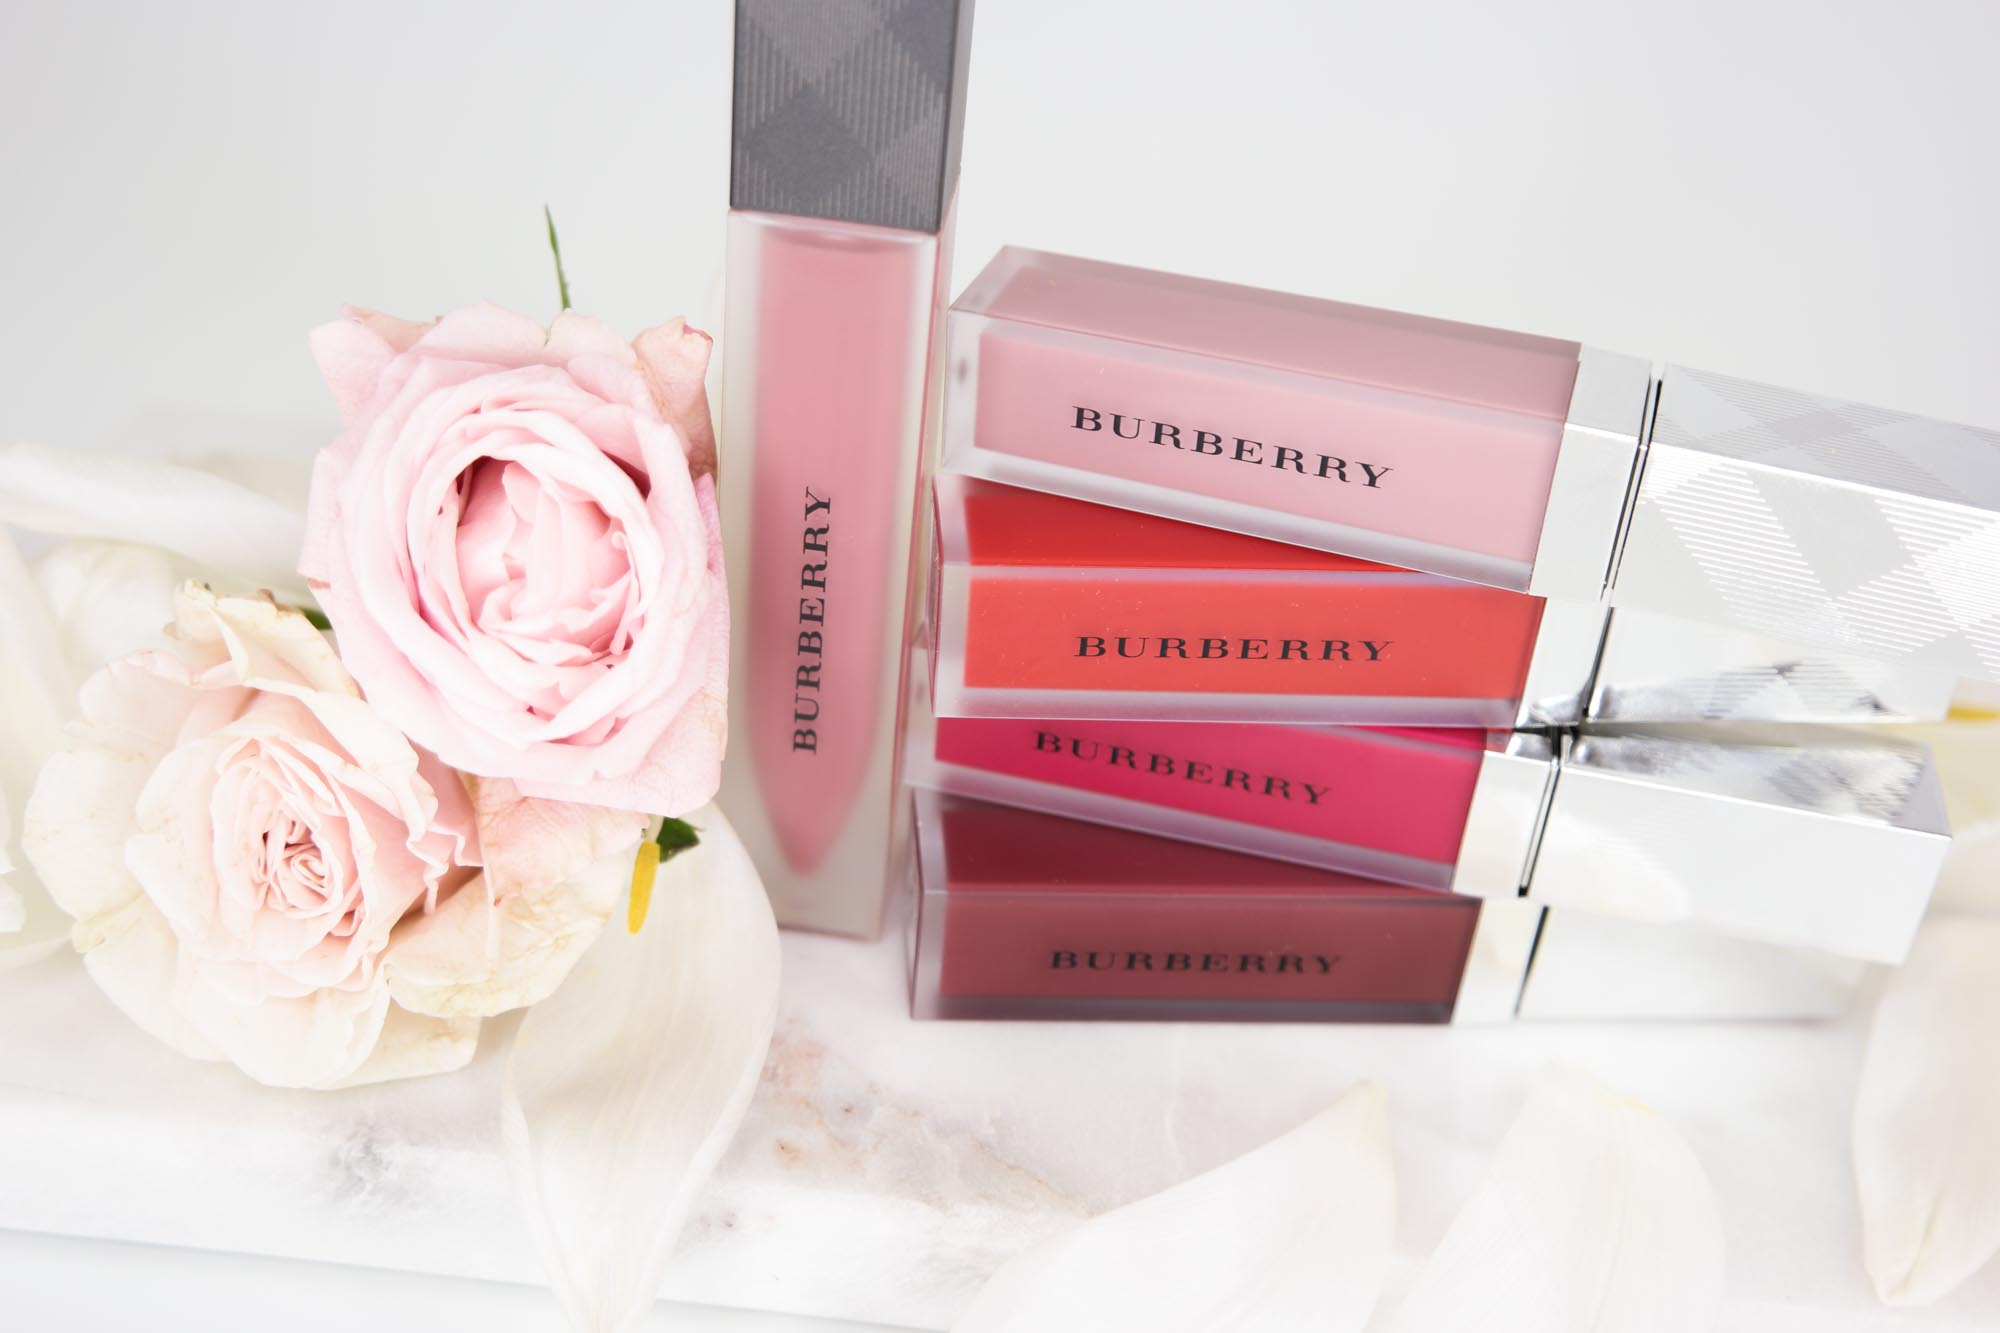 Burberry Liquid Lip Velvets Swatches & Review